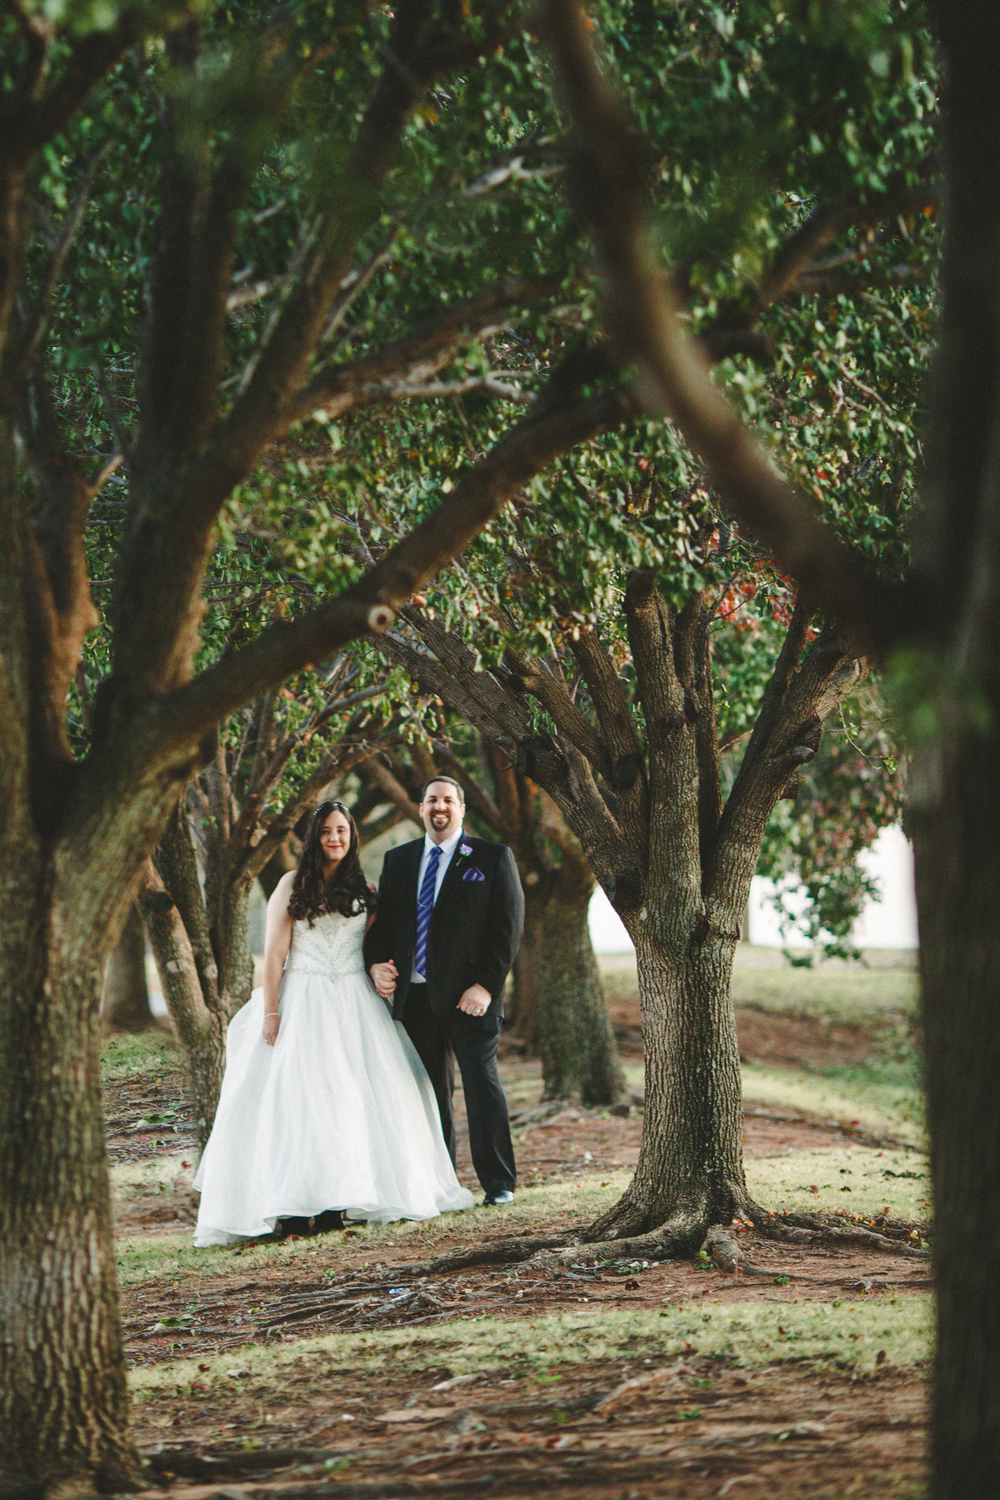 rs bride groom creative portrait among tress greenery oklahoma city